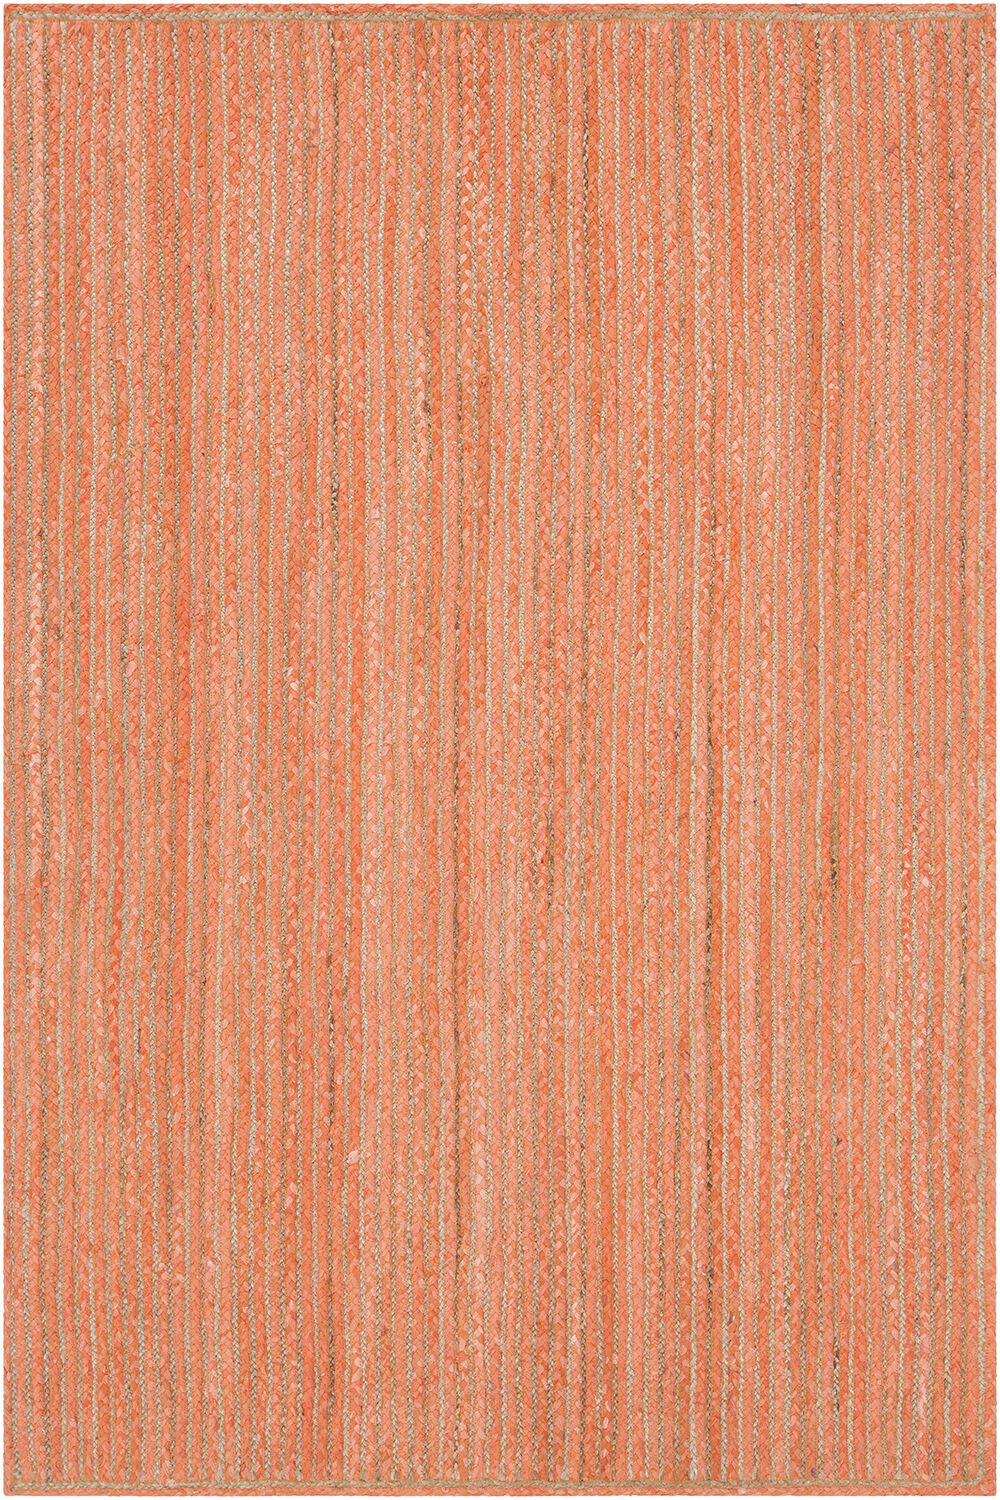 Yother Textured Contemporary Orange Area Rug Rug Size: 3' x 5'